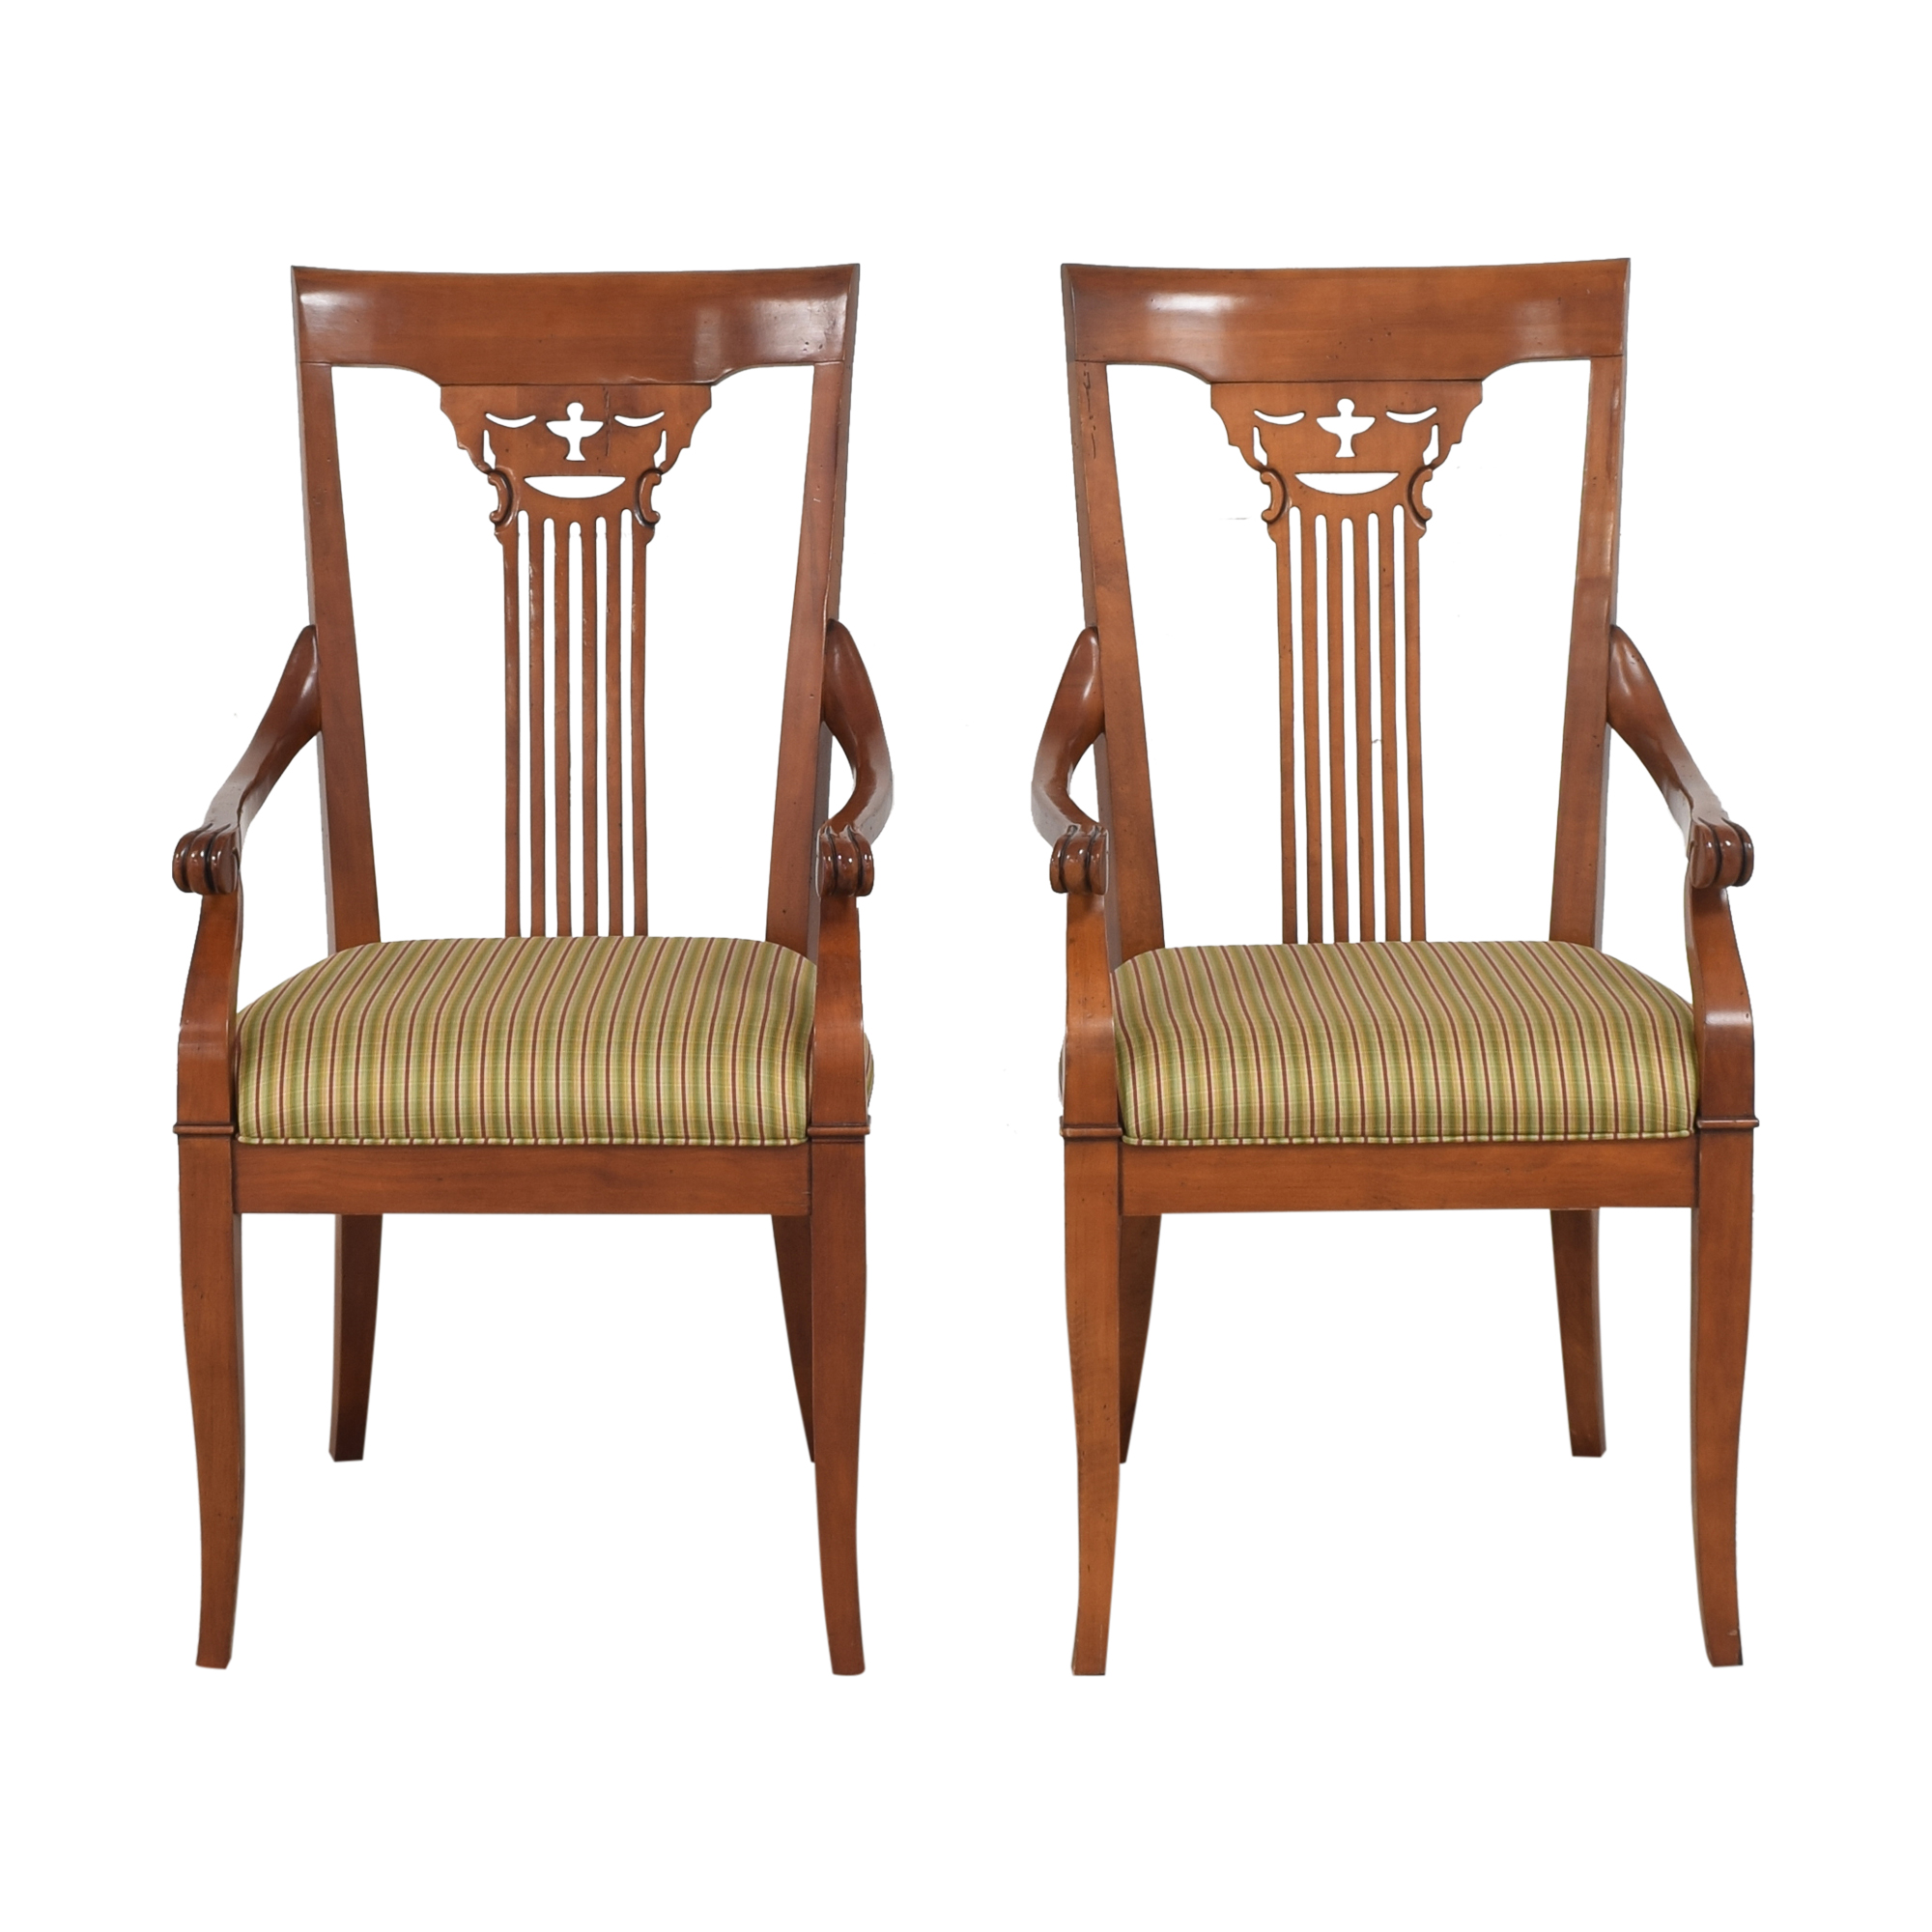 Harden Harden Dining Arm Chairs on sale